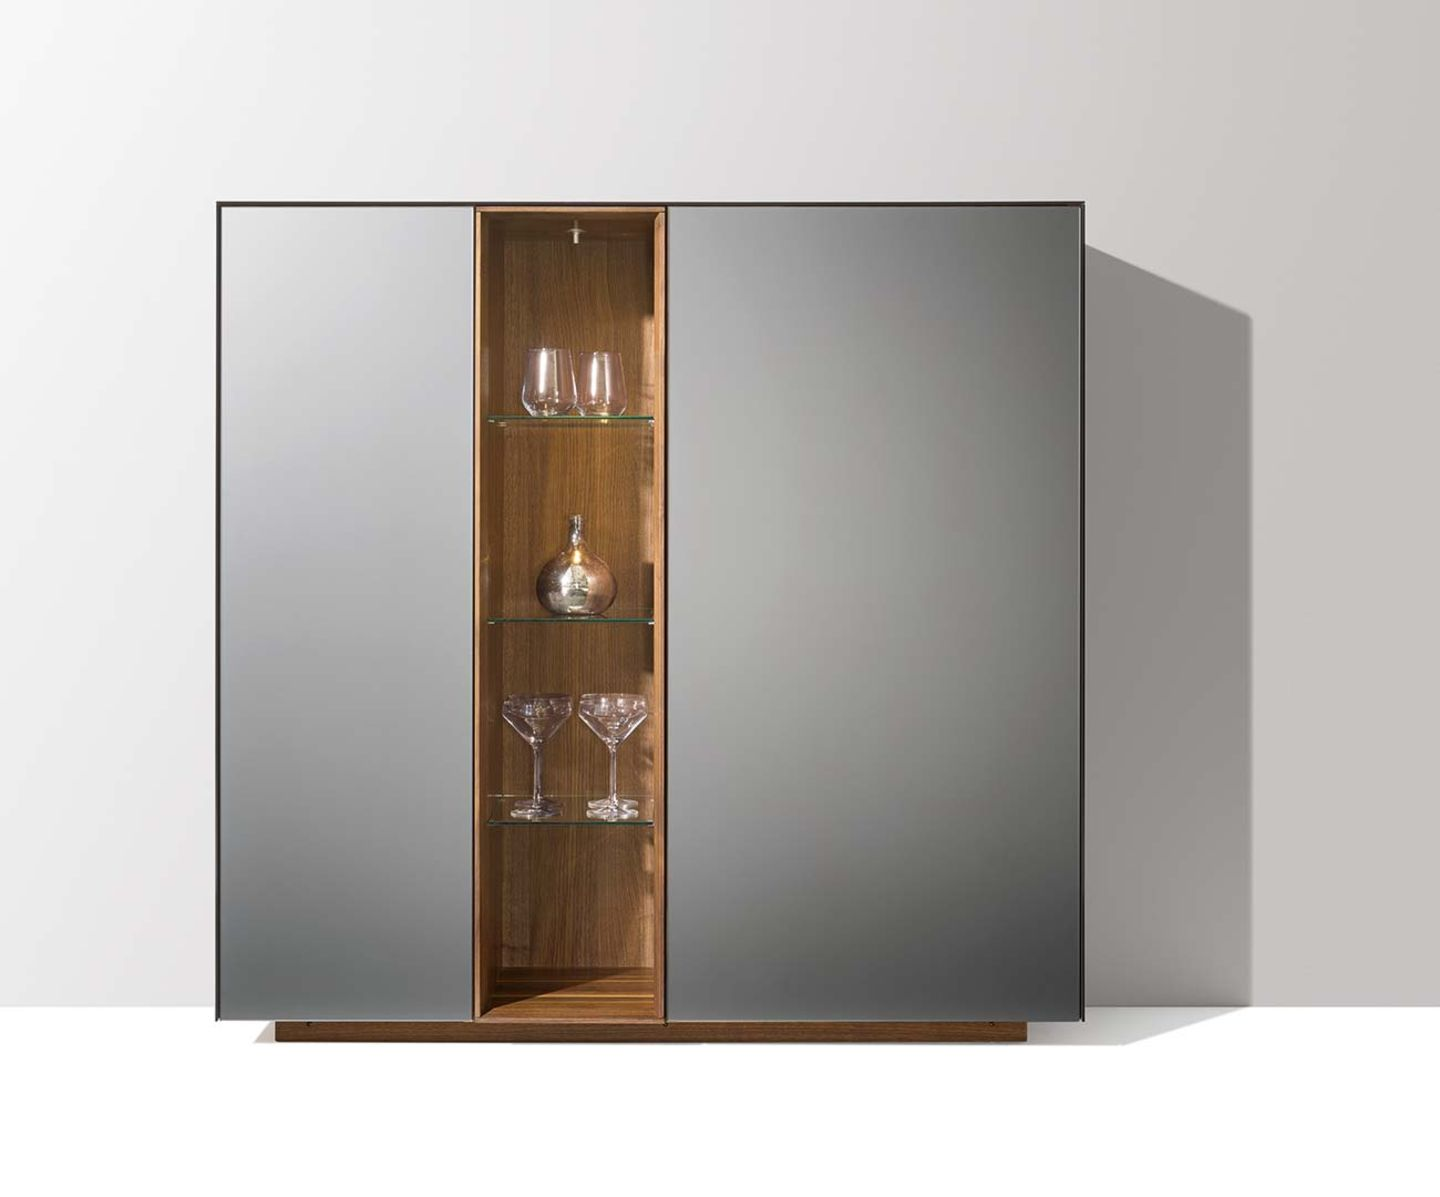 cubus pure highboard in steel coloured glass